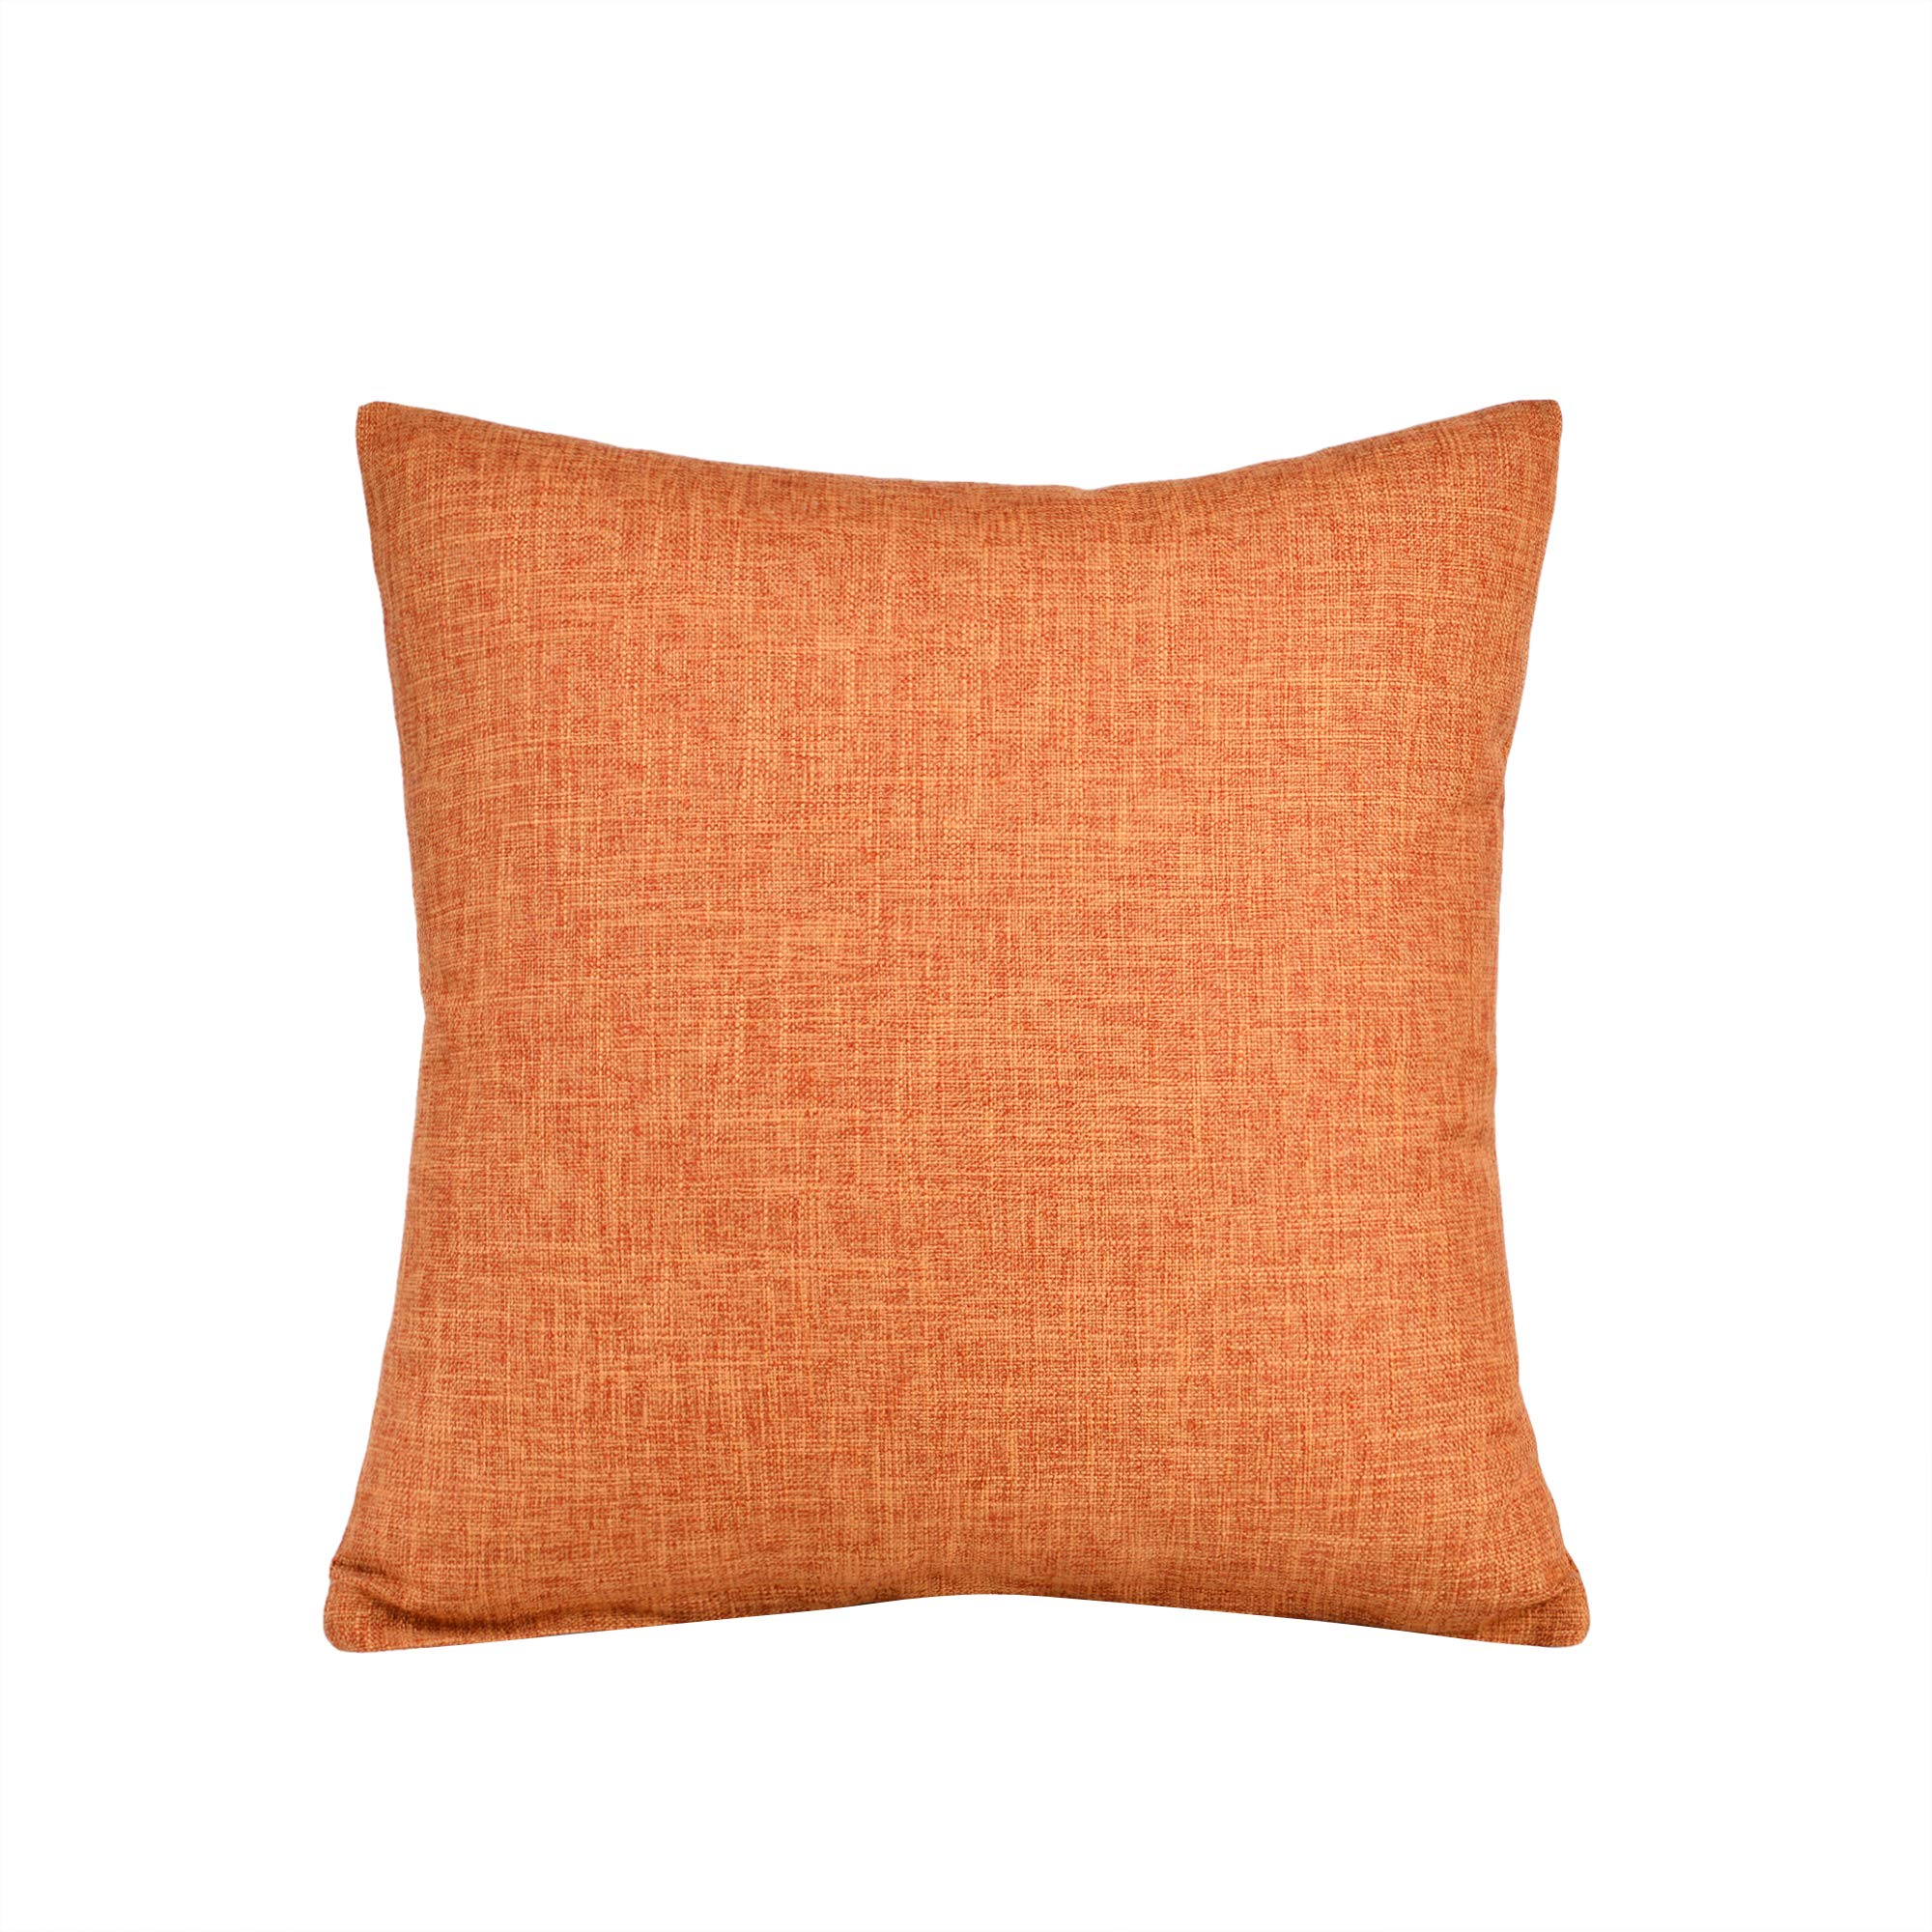 """SEEKSEE Solid Color Pillow Covers Shams Burlap Lined Square Throw Pillow Case Cushion Covers for Bench Couch Sofa Living Room (26""""X26"""", Orange)"""